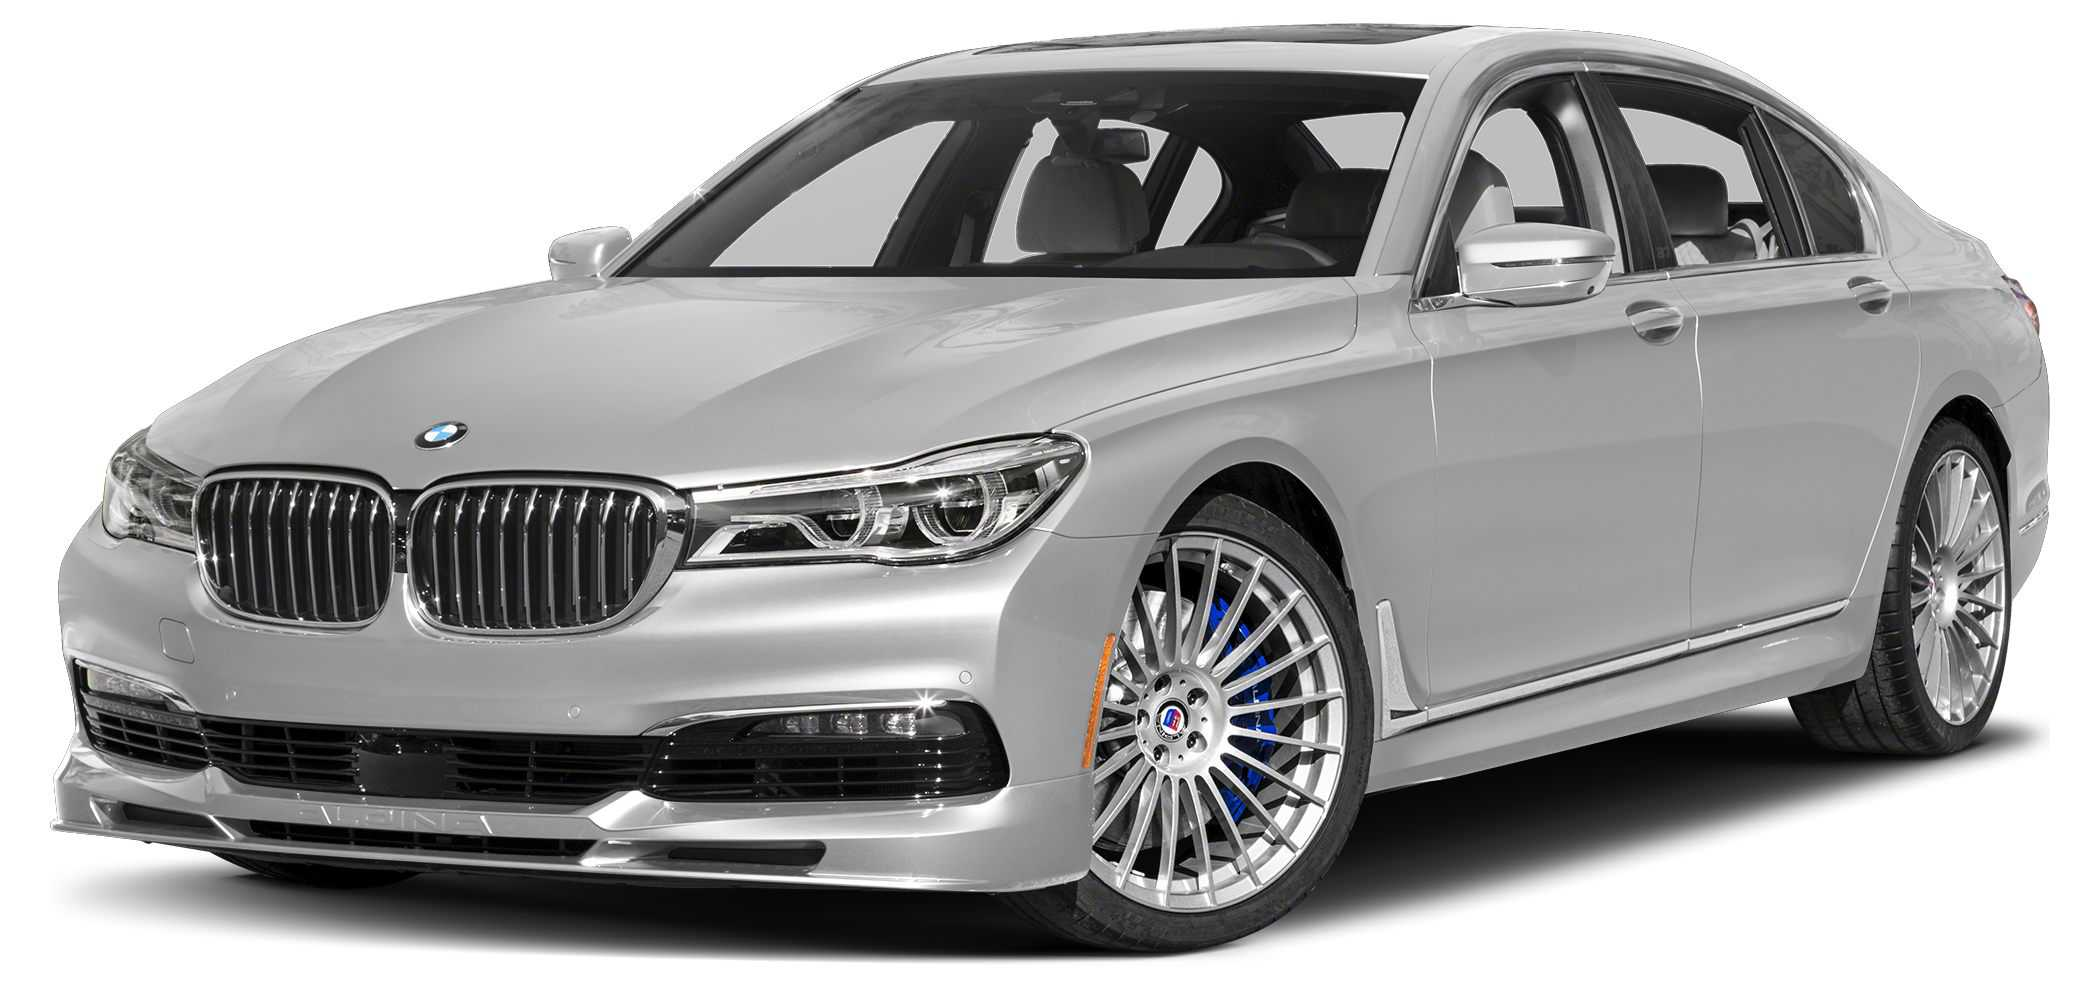 2017 bmw alpina b7 for sale in freehold nj 147195 00